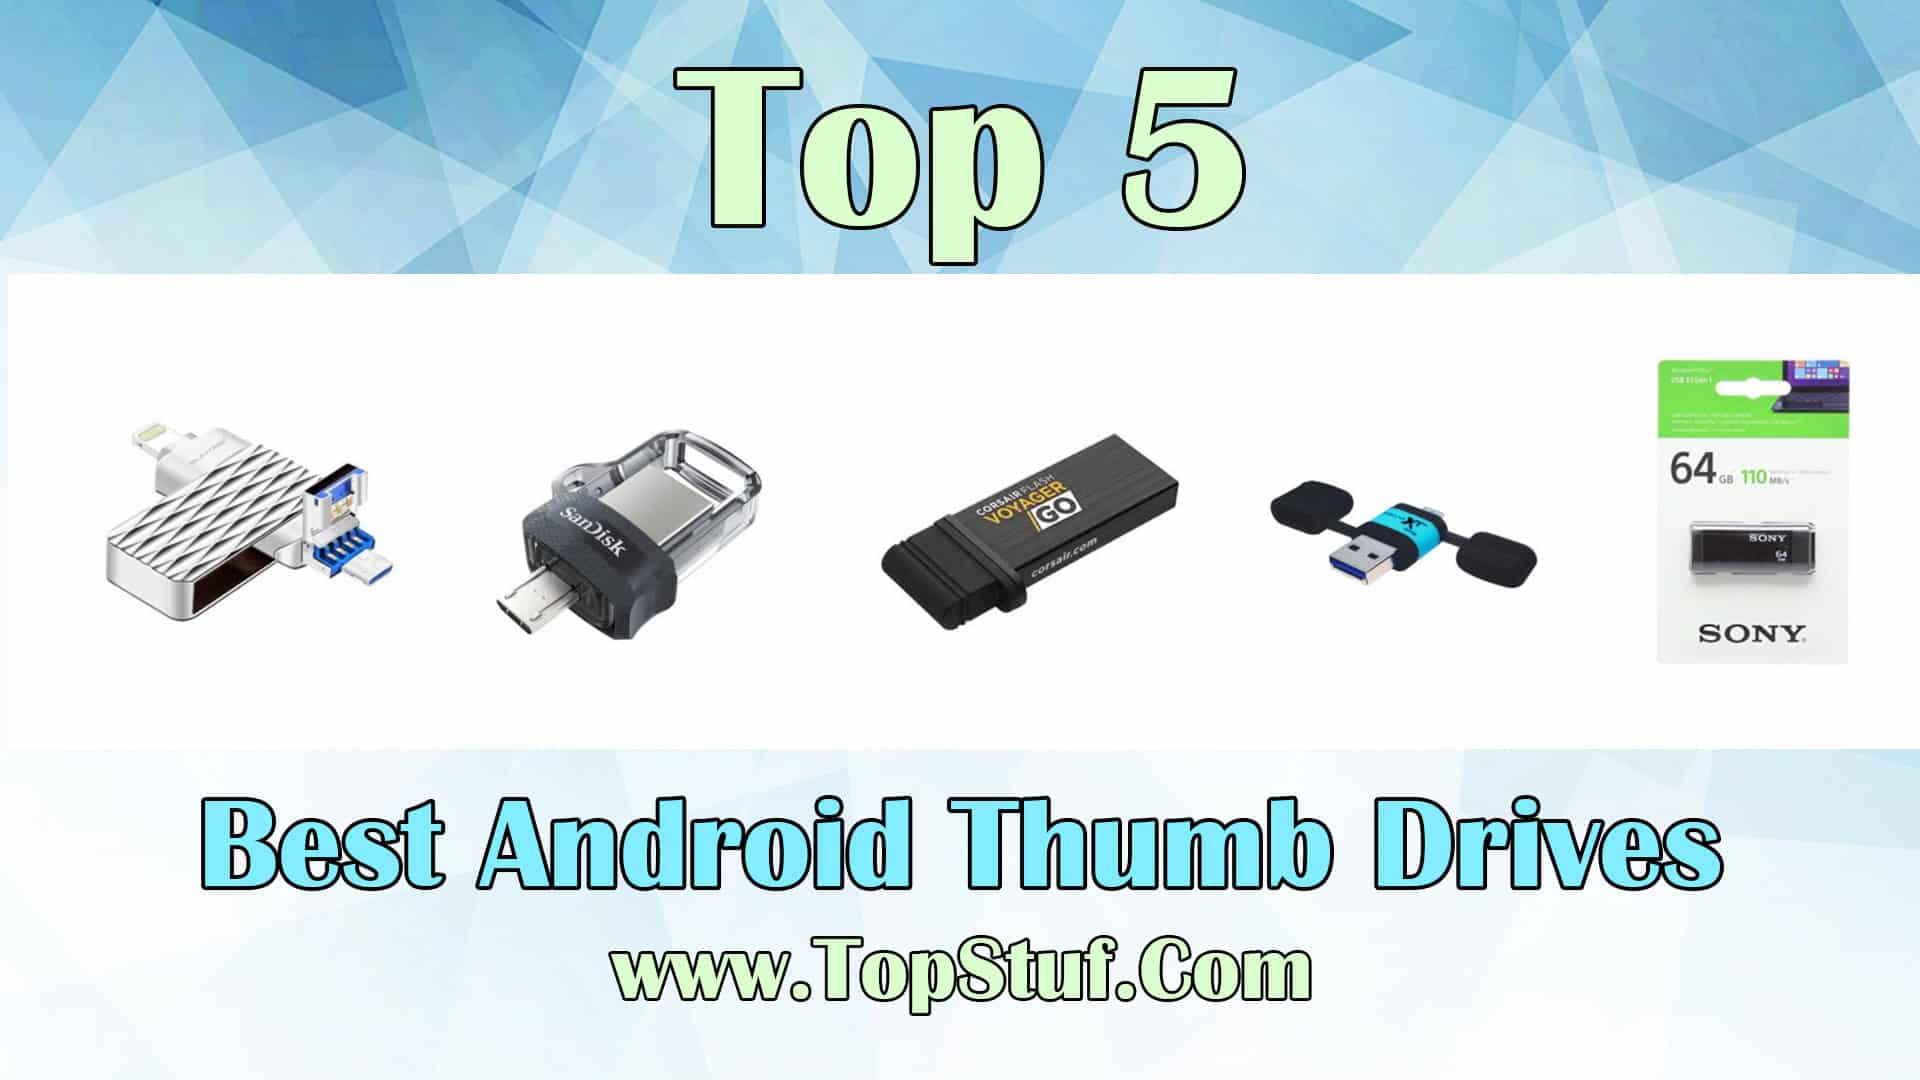 Best Android Thumb Drives